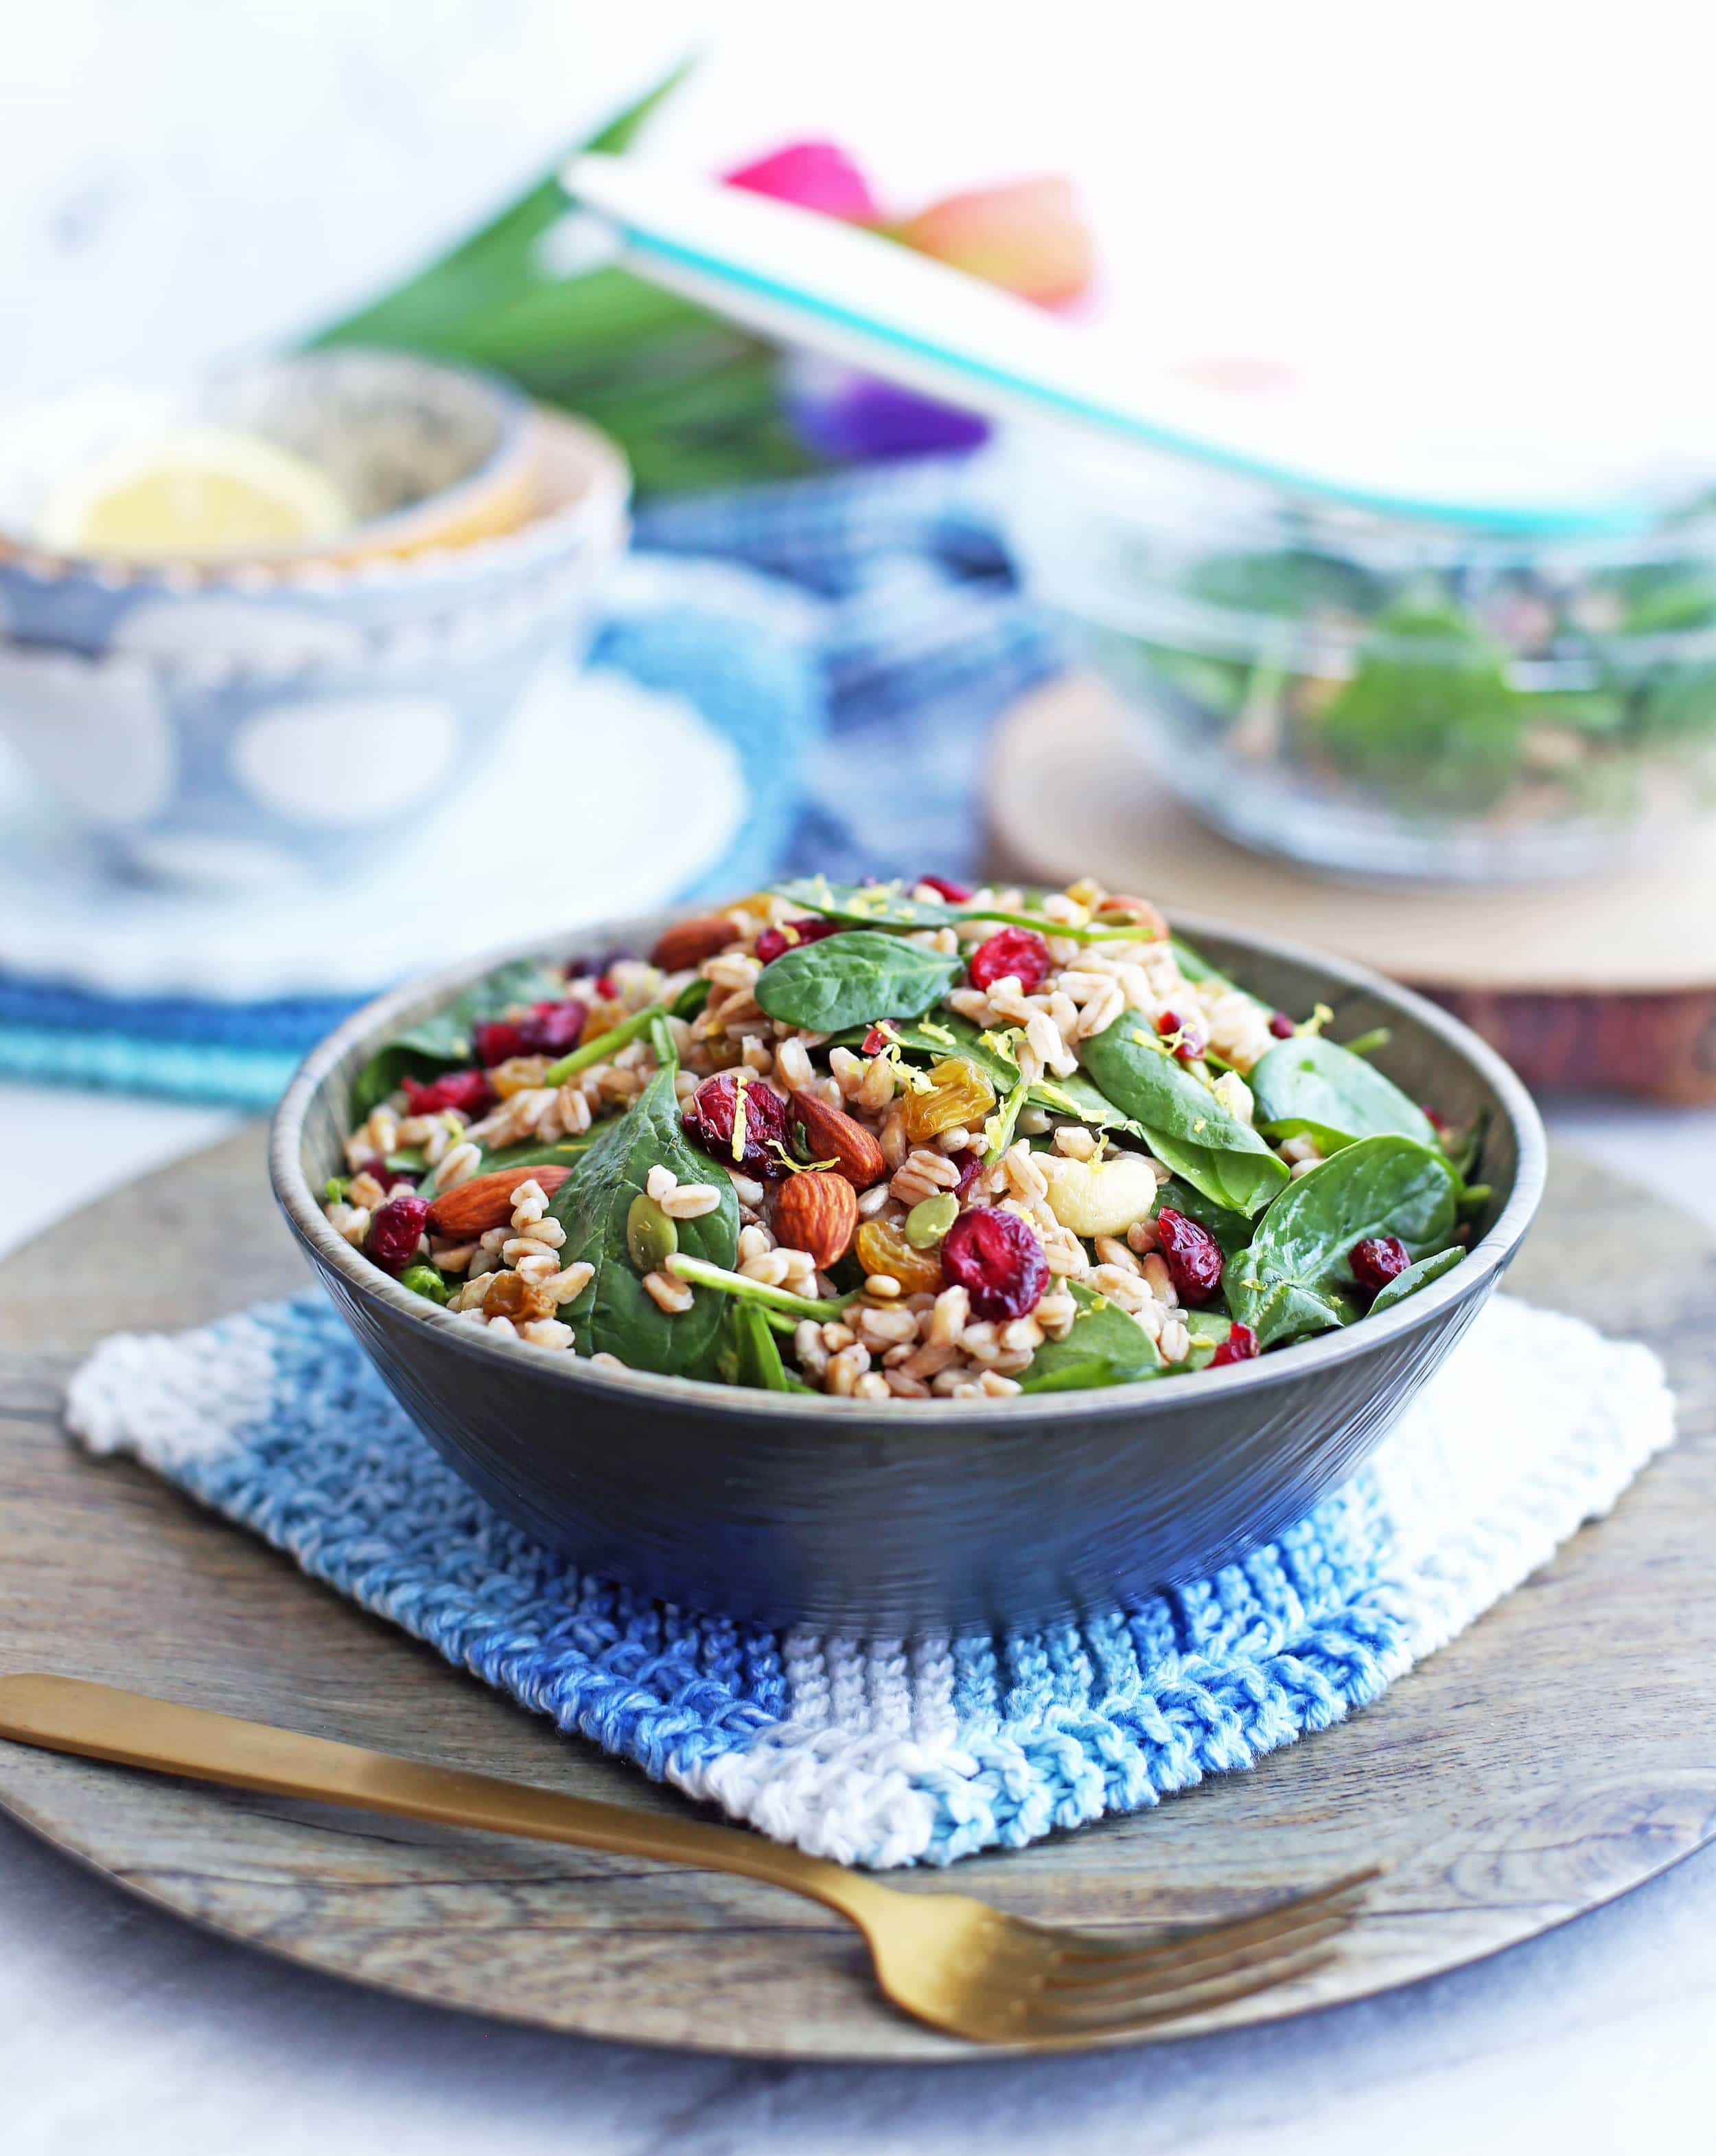 Farro and Spinach Salad with Dried Fruit and Nuts in a wooden bowl with a fork to its side; more salad behind it.